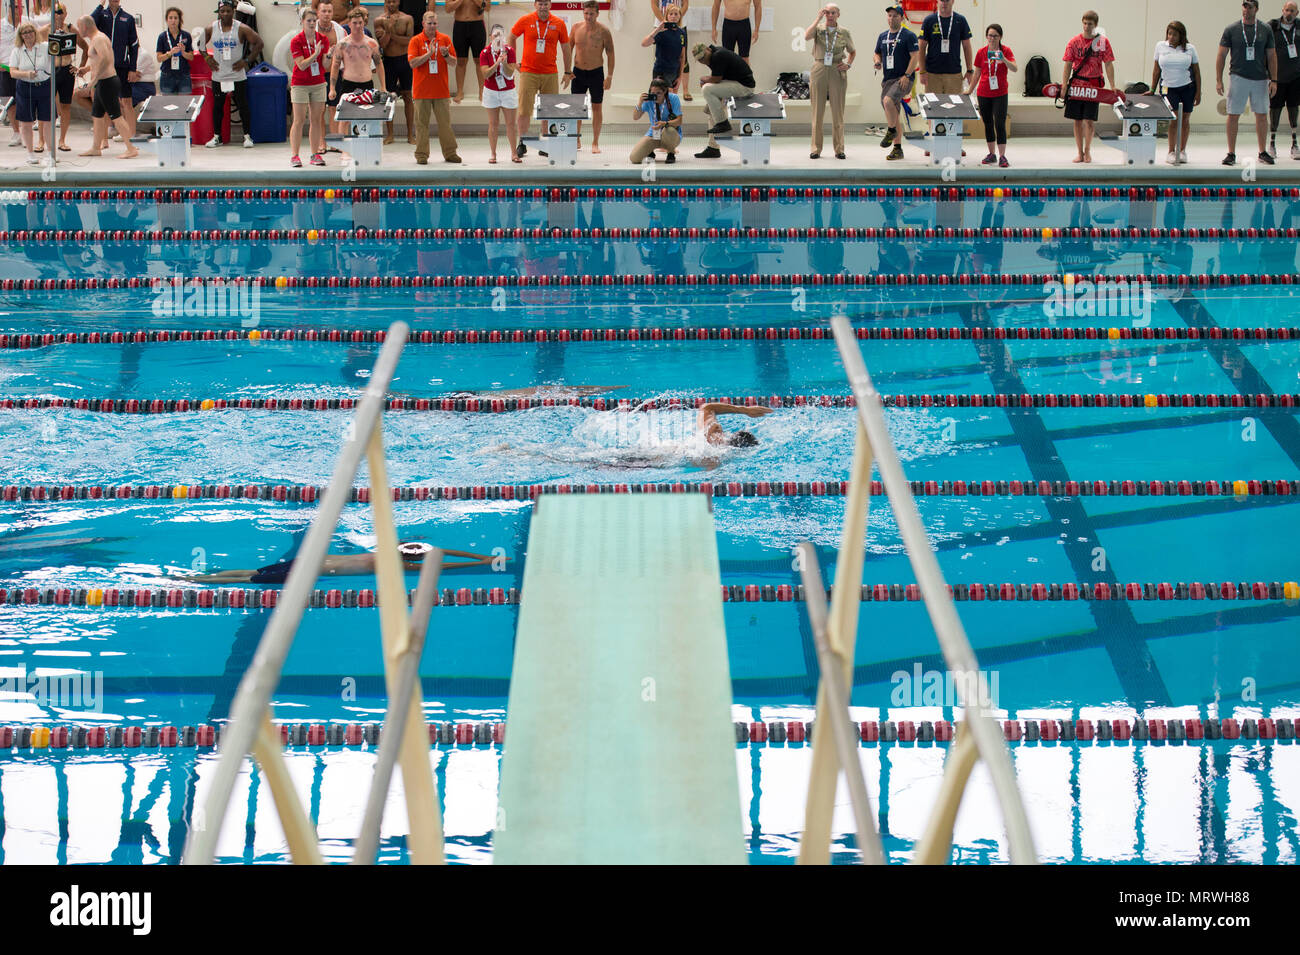 A swimmer races in the University Illinois in Chicago natatorium during the 2017 Dept. of Defense Warrior Games event in Chicago July 9, 2017. (DoD photo by EJ Hersom) - Stock Image